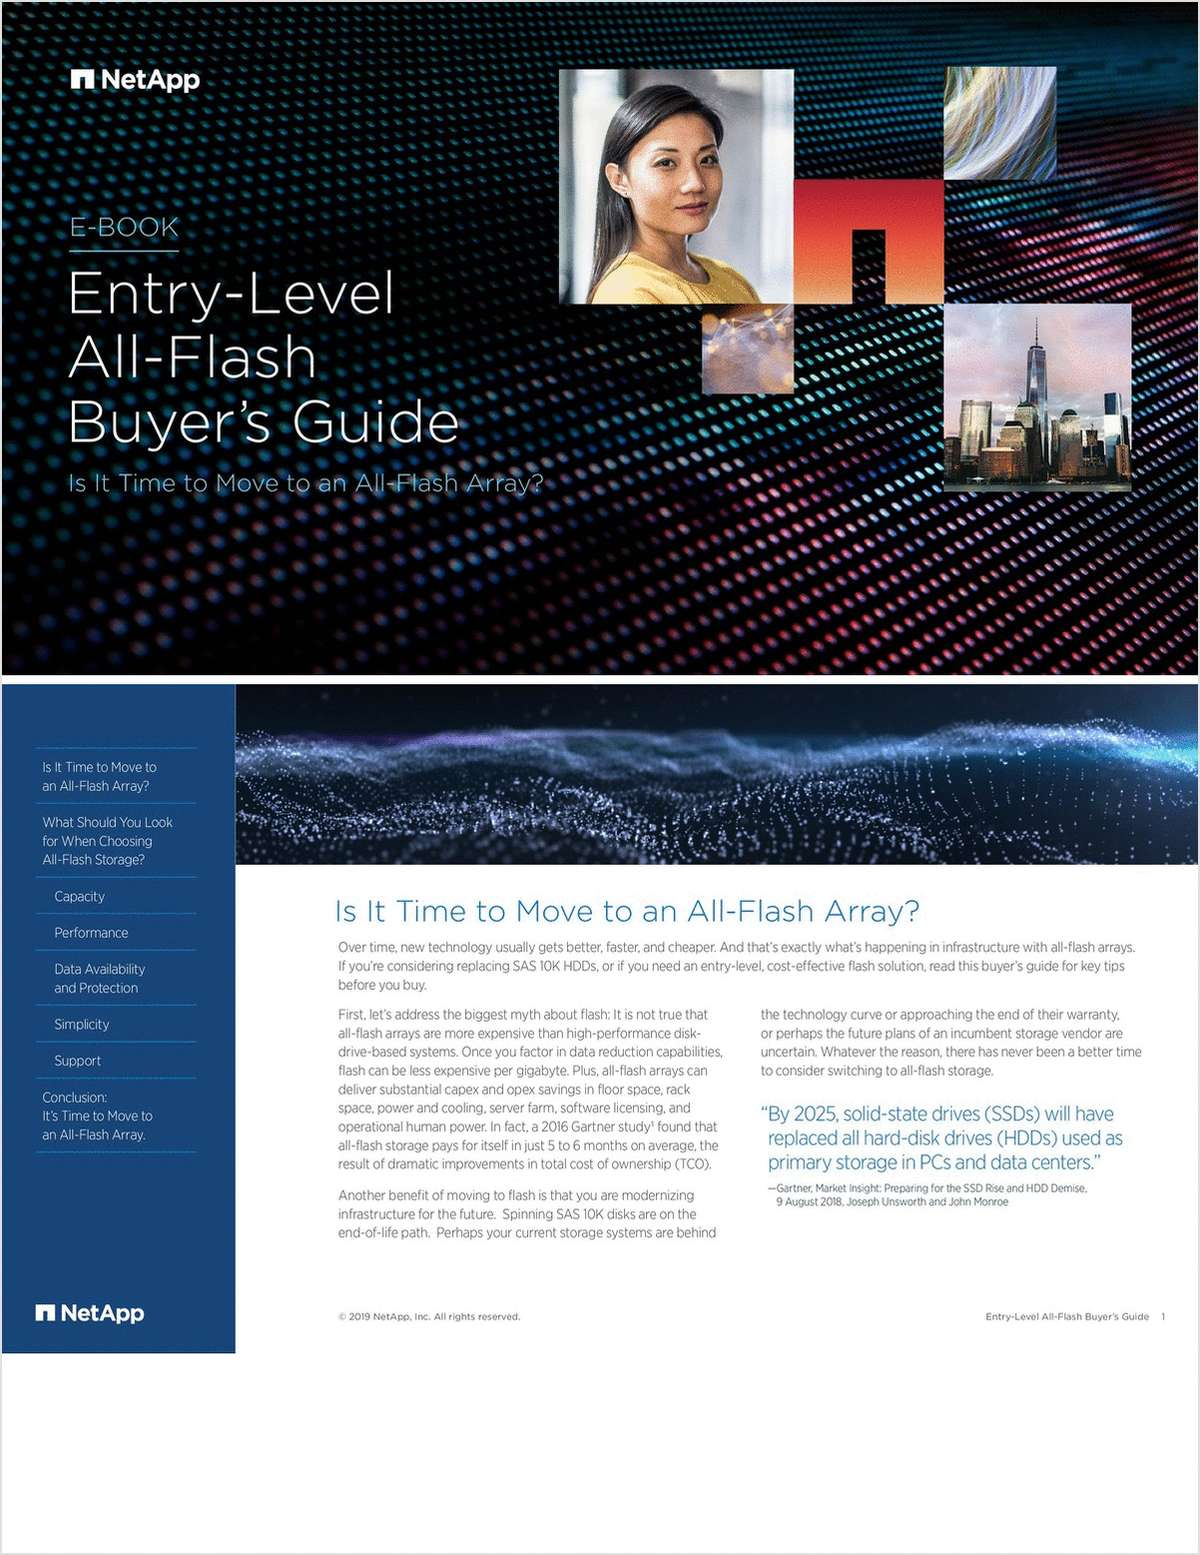 Buyers Guide: Is It Time to Move to an All-Flash Array?